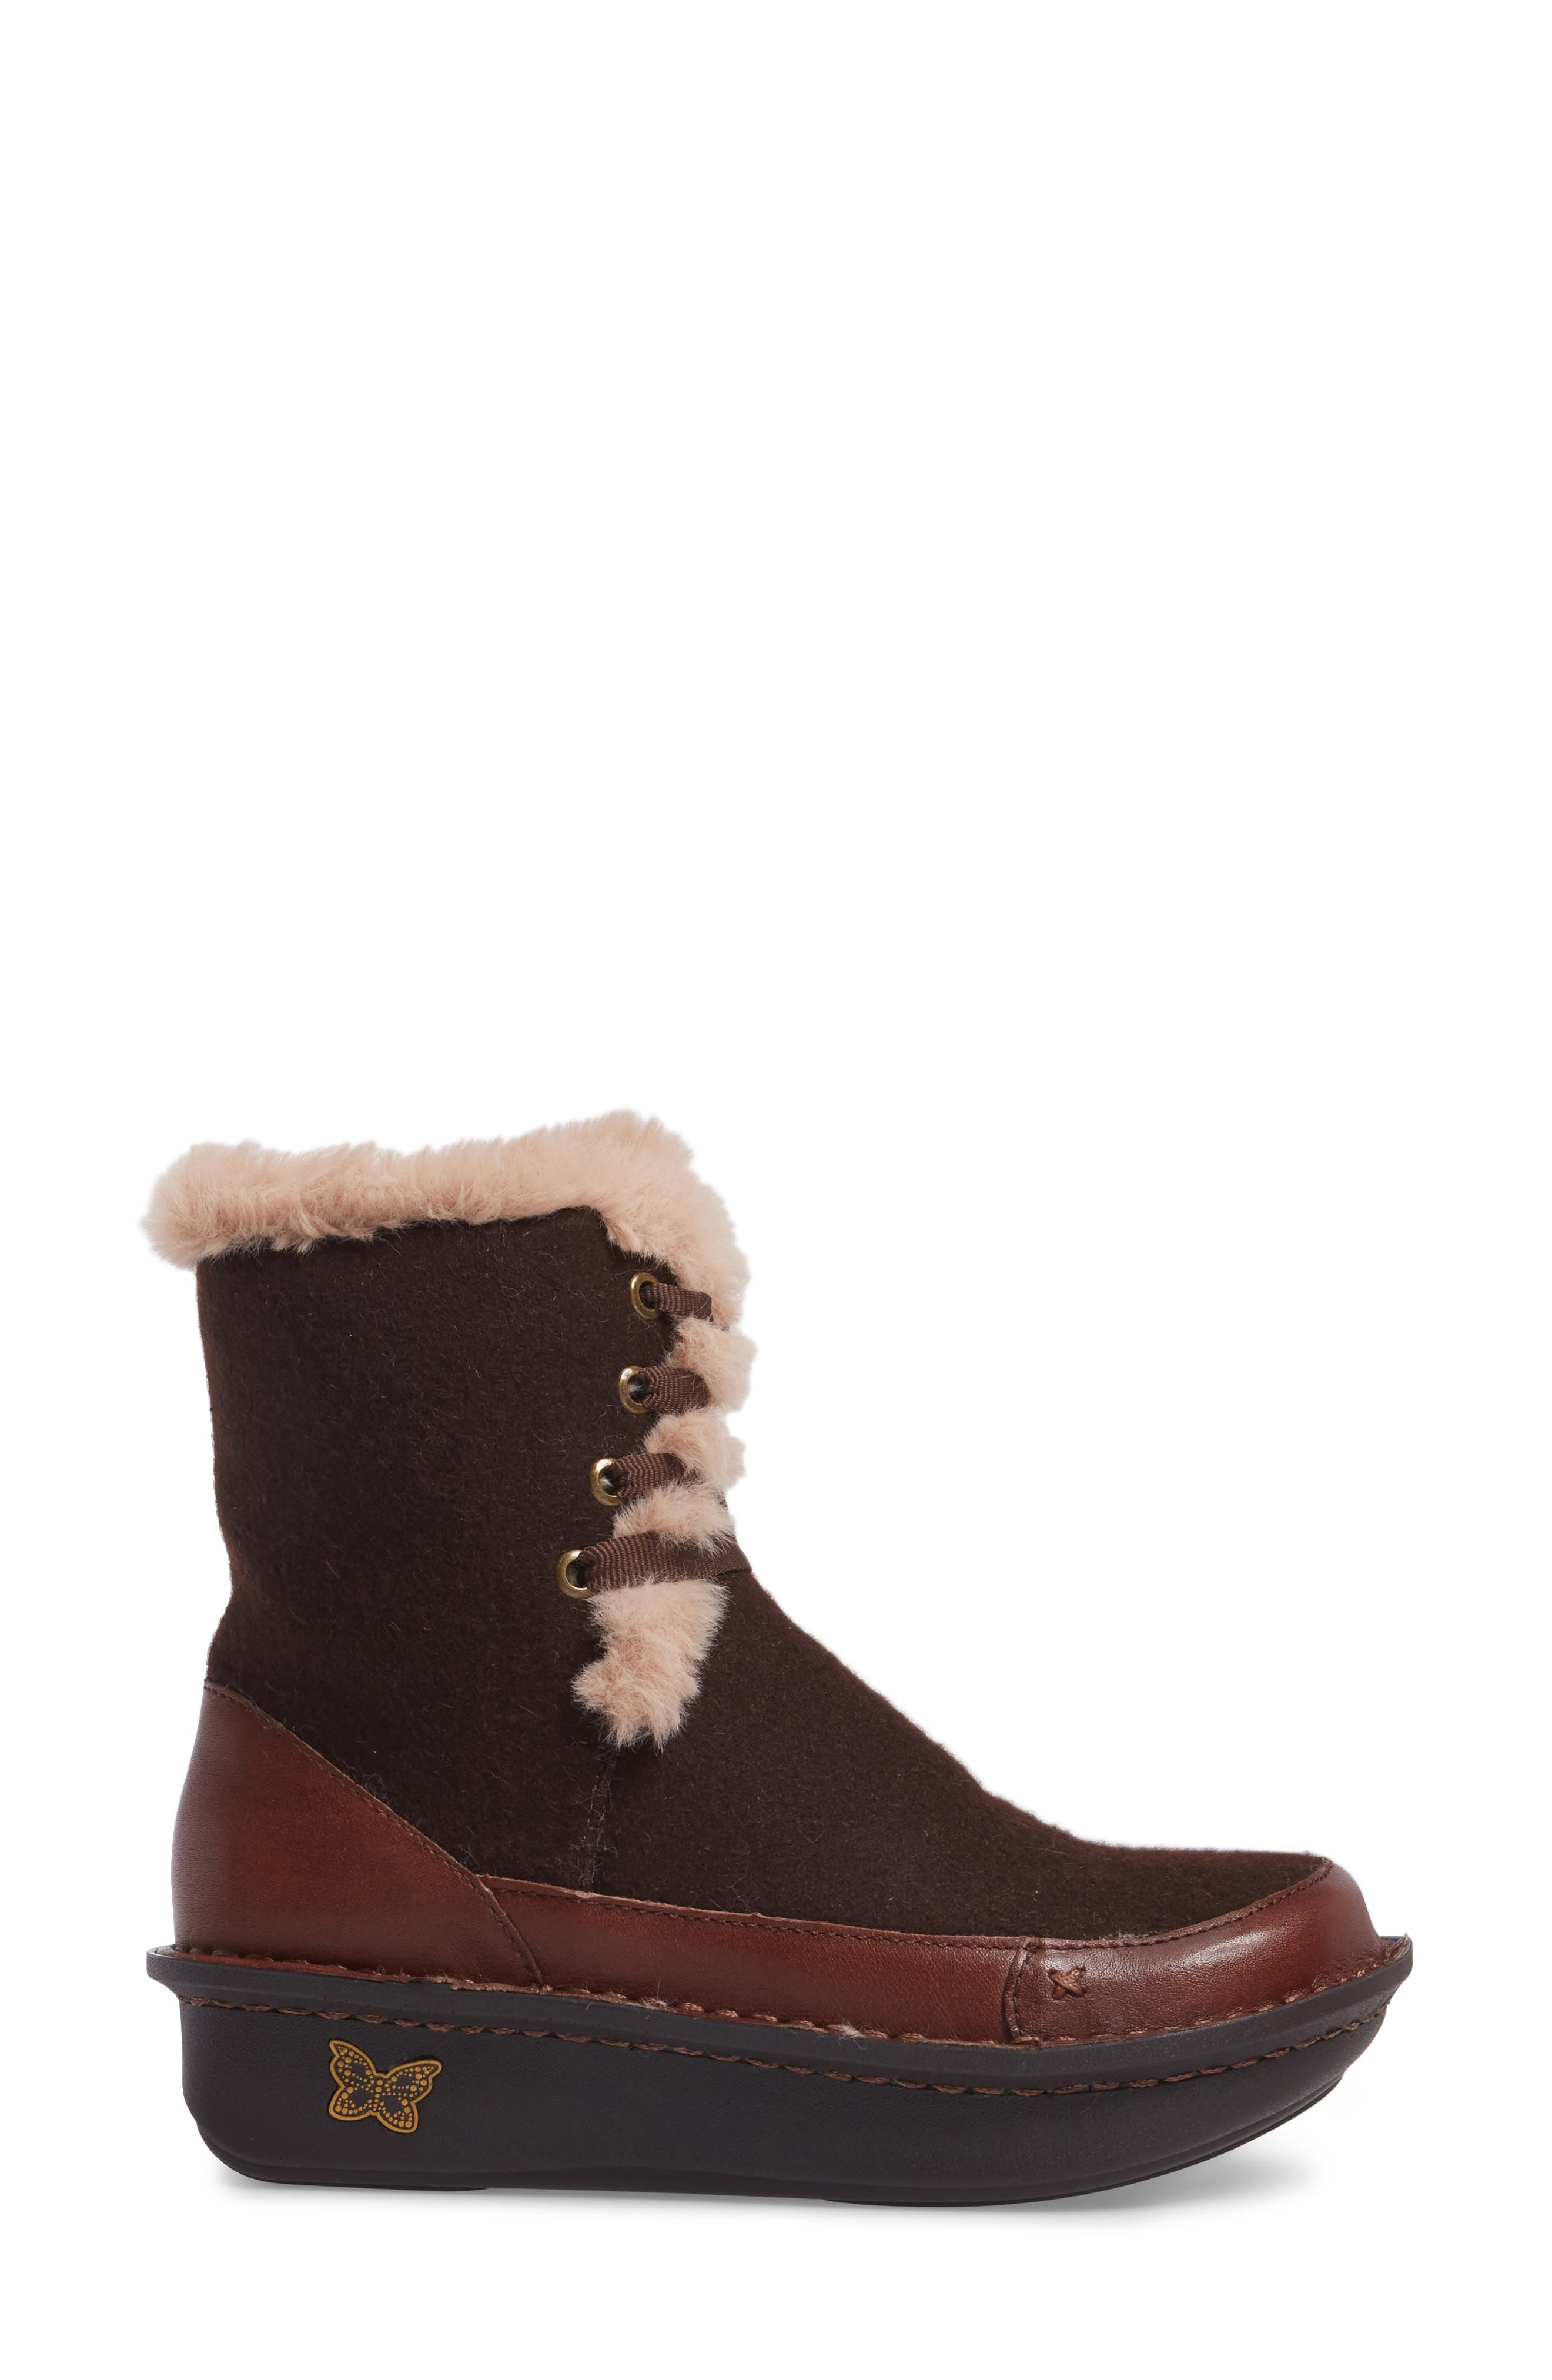 Twisp Lace-Up Boot with Faux Fur Lining,                             Alternate thumbnail 3, color,                             Hazelnut Wool Leather